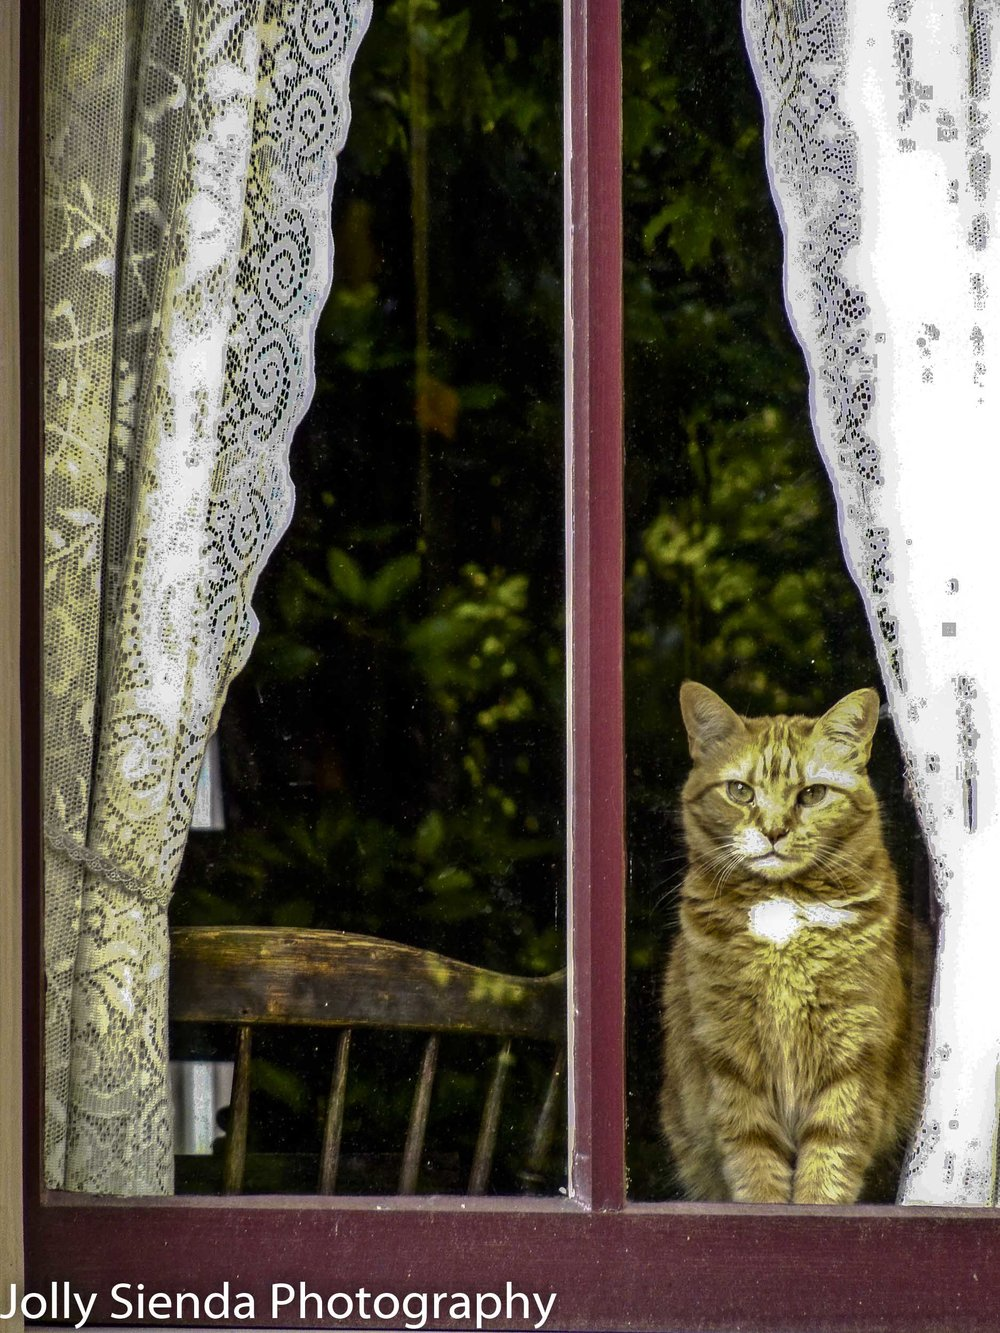 Orange Tabby Cat Looks out the Window Through Lace Curtains